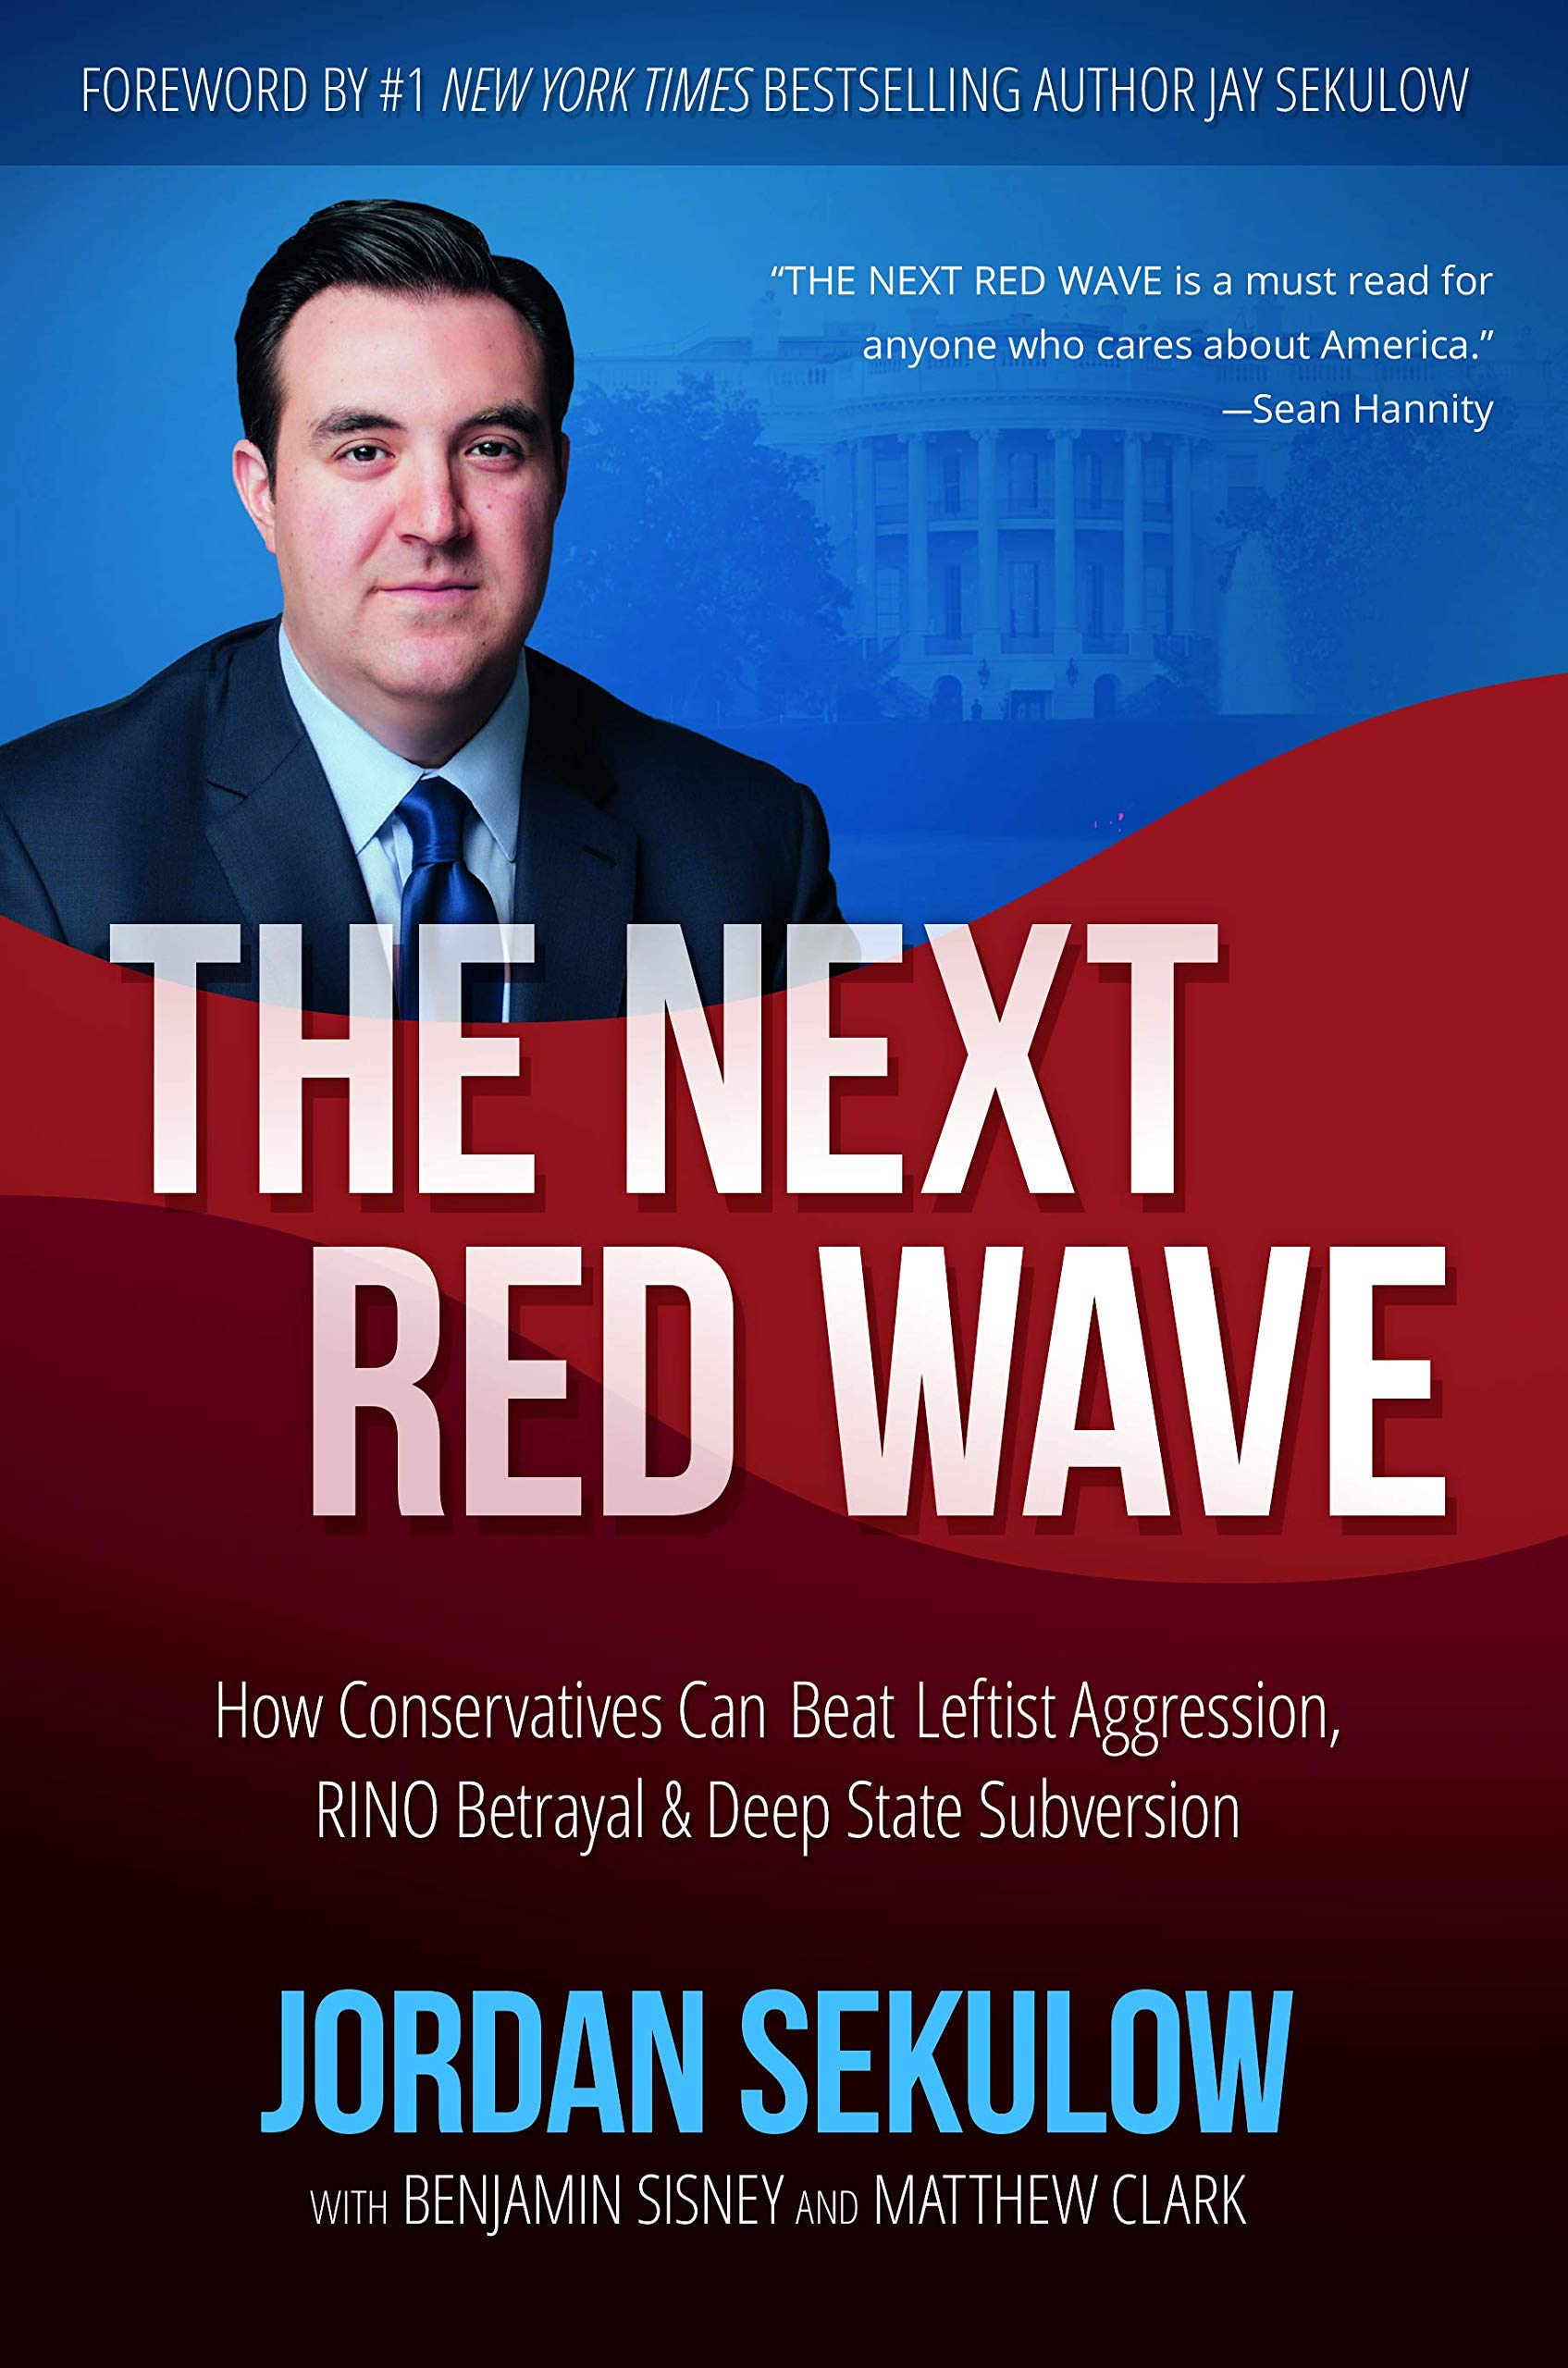 The Next Red Wave: How Conservatives Can Beat Leftist Aggression, RINO Betrayal & Deep State Subversion by FaithWords/Hachette Book Group